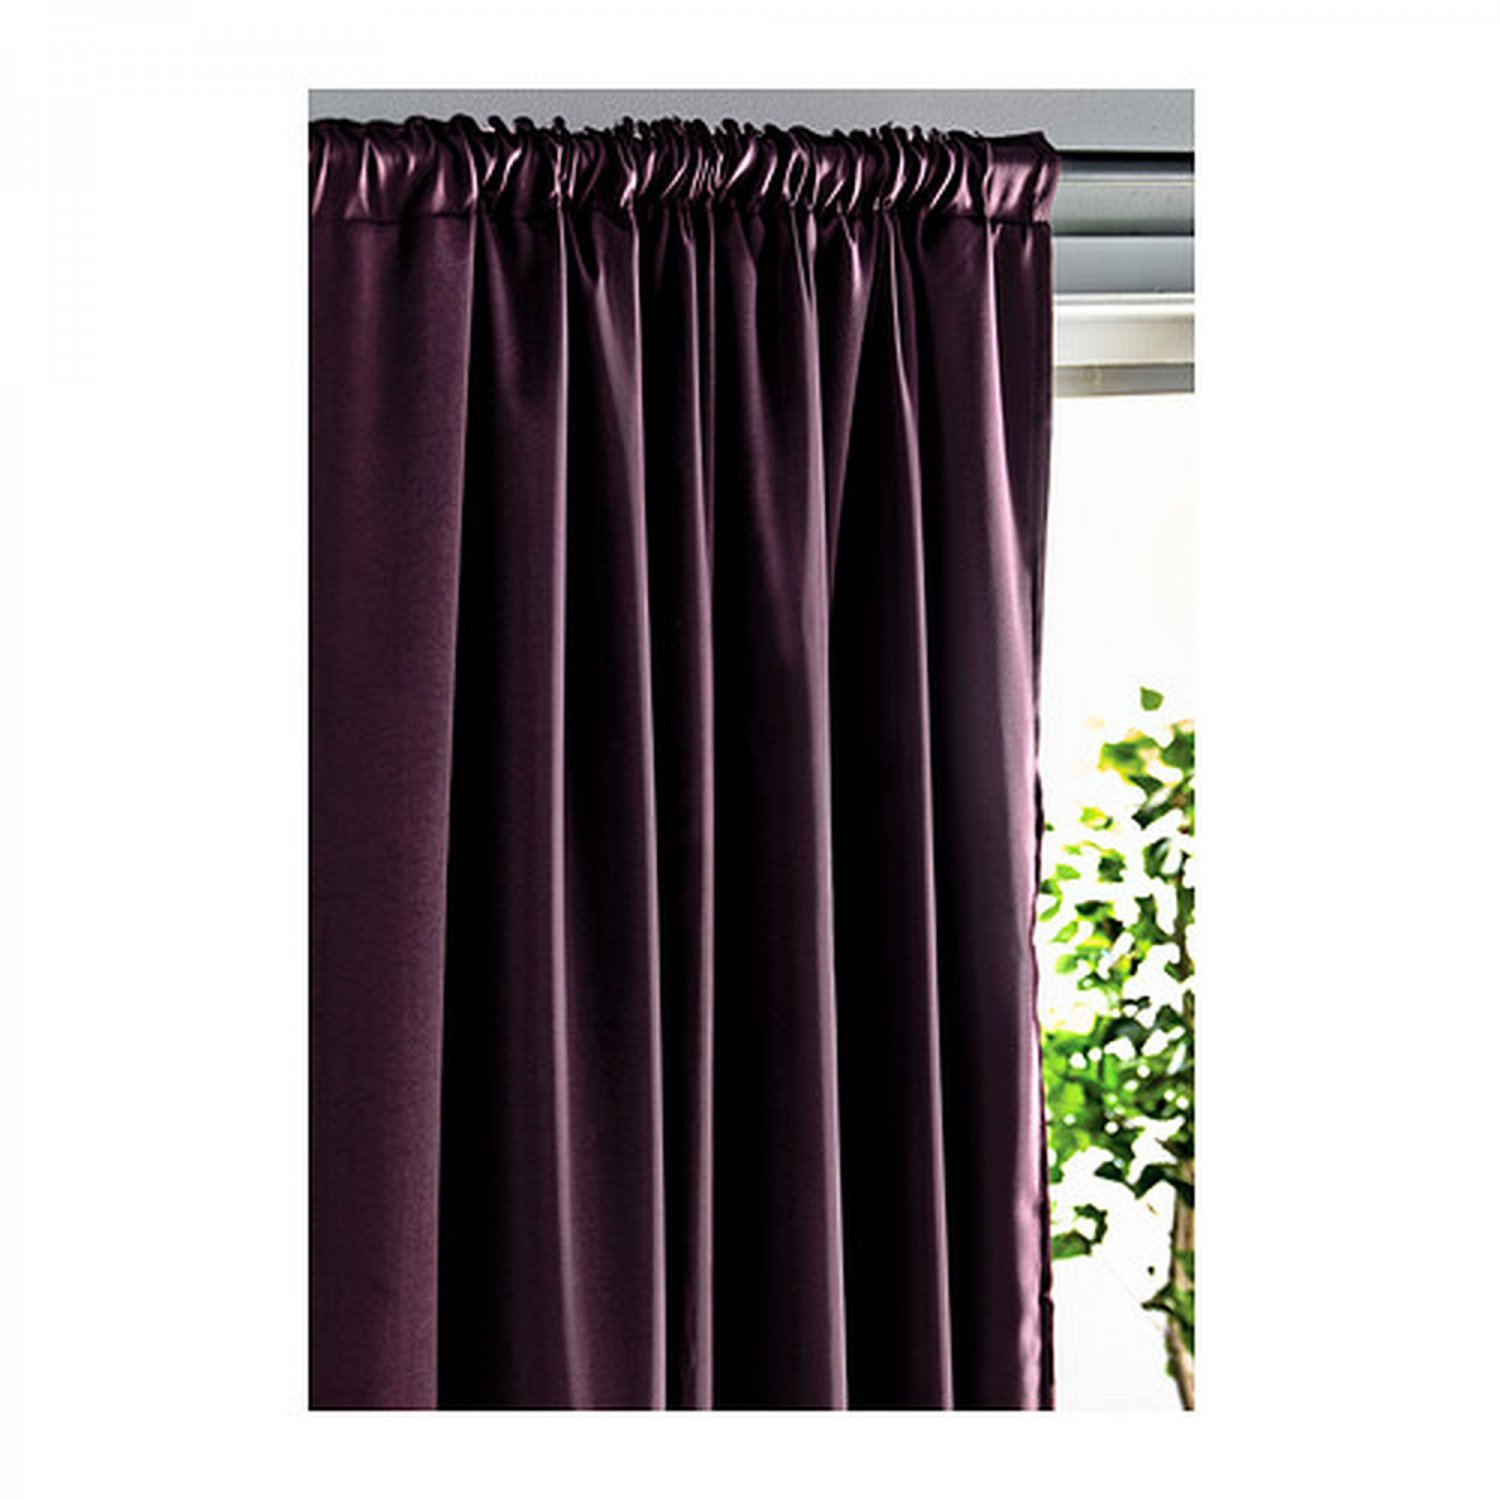 Ikea Werna Curtains Drapes 2 Panels Lilac Purple Block Out 98